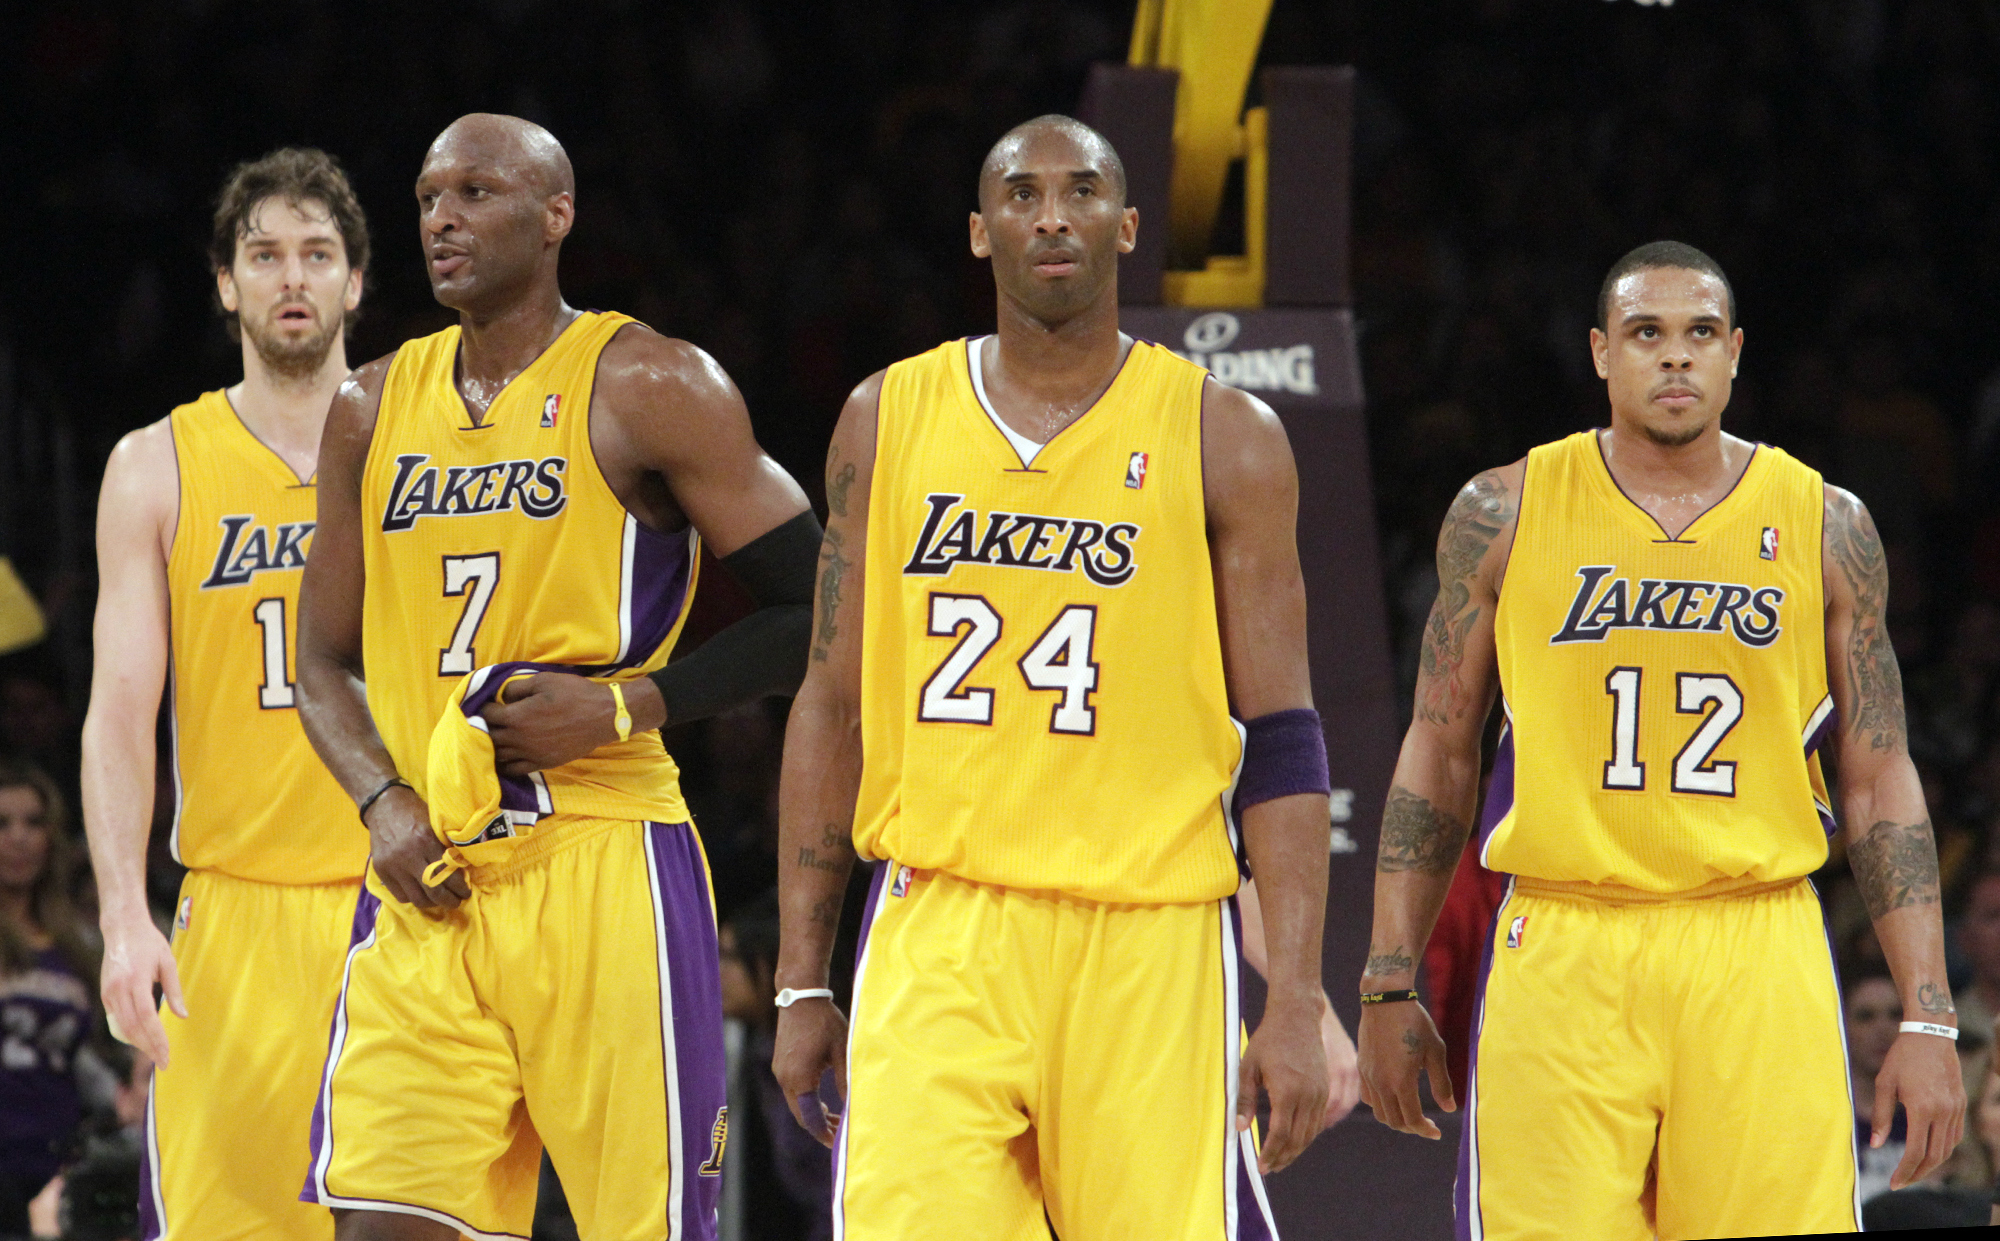 Lakers' (l to r) Pau Gasol, Lamar Odom, Kobe Bryant and Shannon Brown during the game. LA Lakers vs